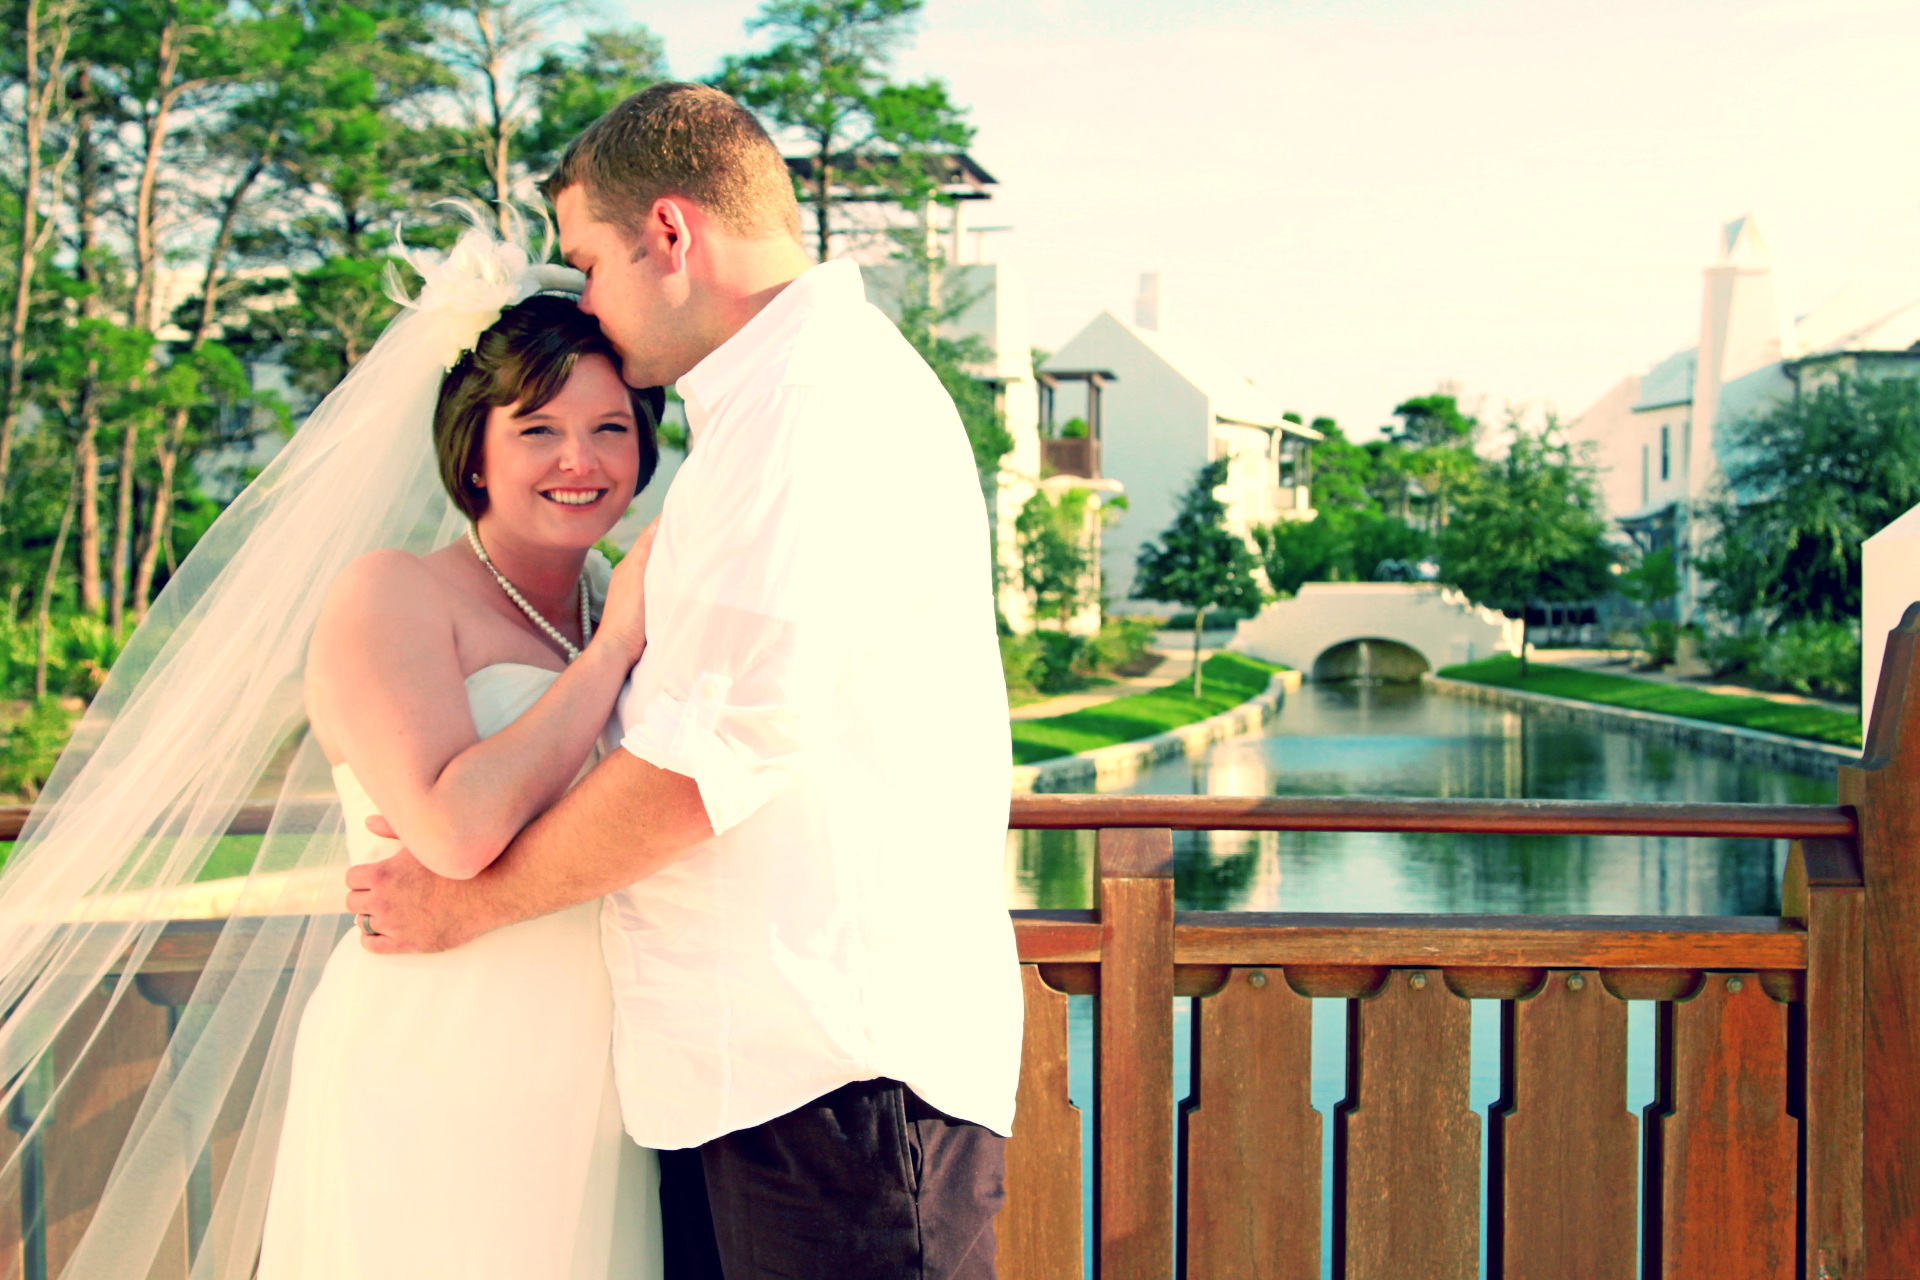 © 2020 Destin Photo | All Rights Reserved | 850-755-2611